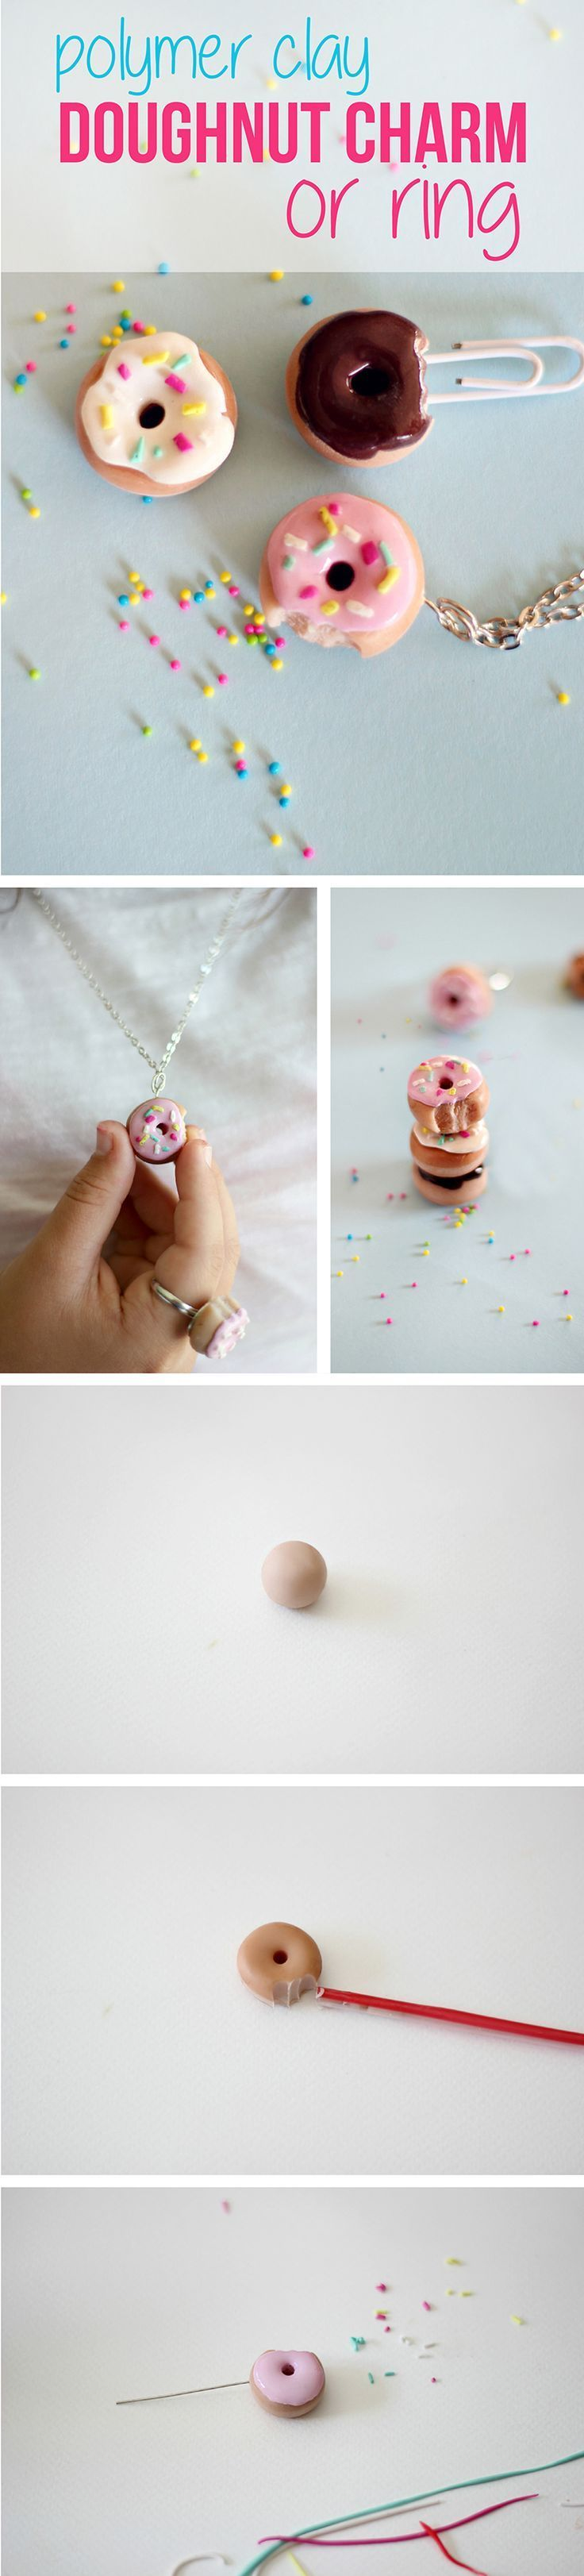 Miniature doughnuts are the cutest accessory we've ever seen! AND you can make this yourself? We're in cutesy crafting heaven with this one. How to make these adorable charms for necklaces or rings with polymer clay: www.ehow.com/...